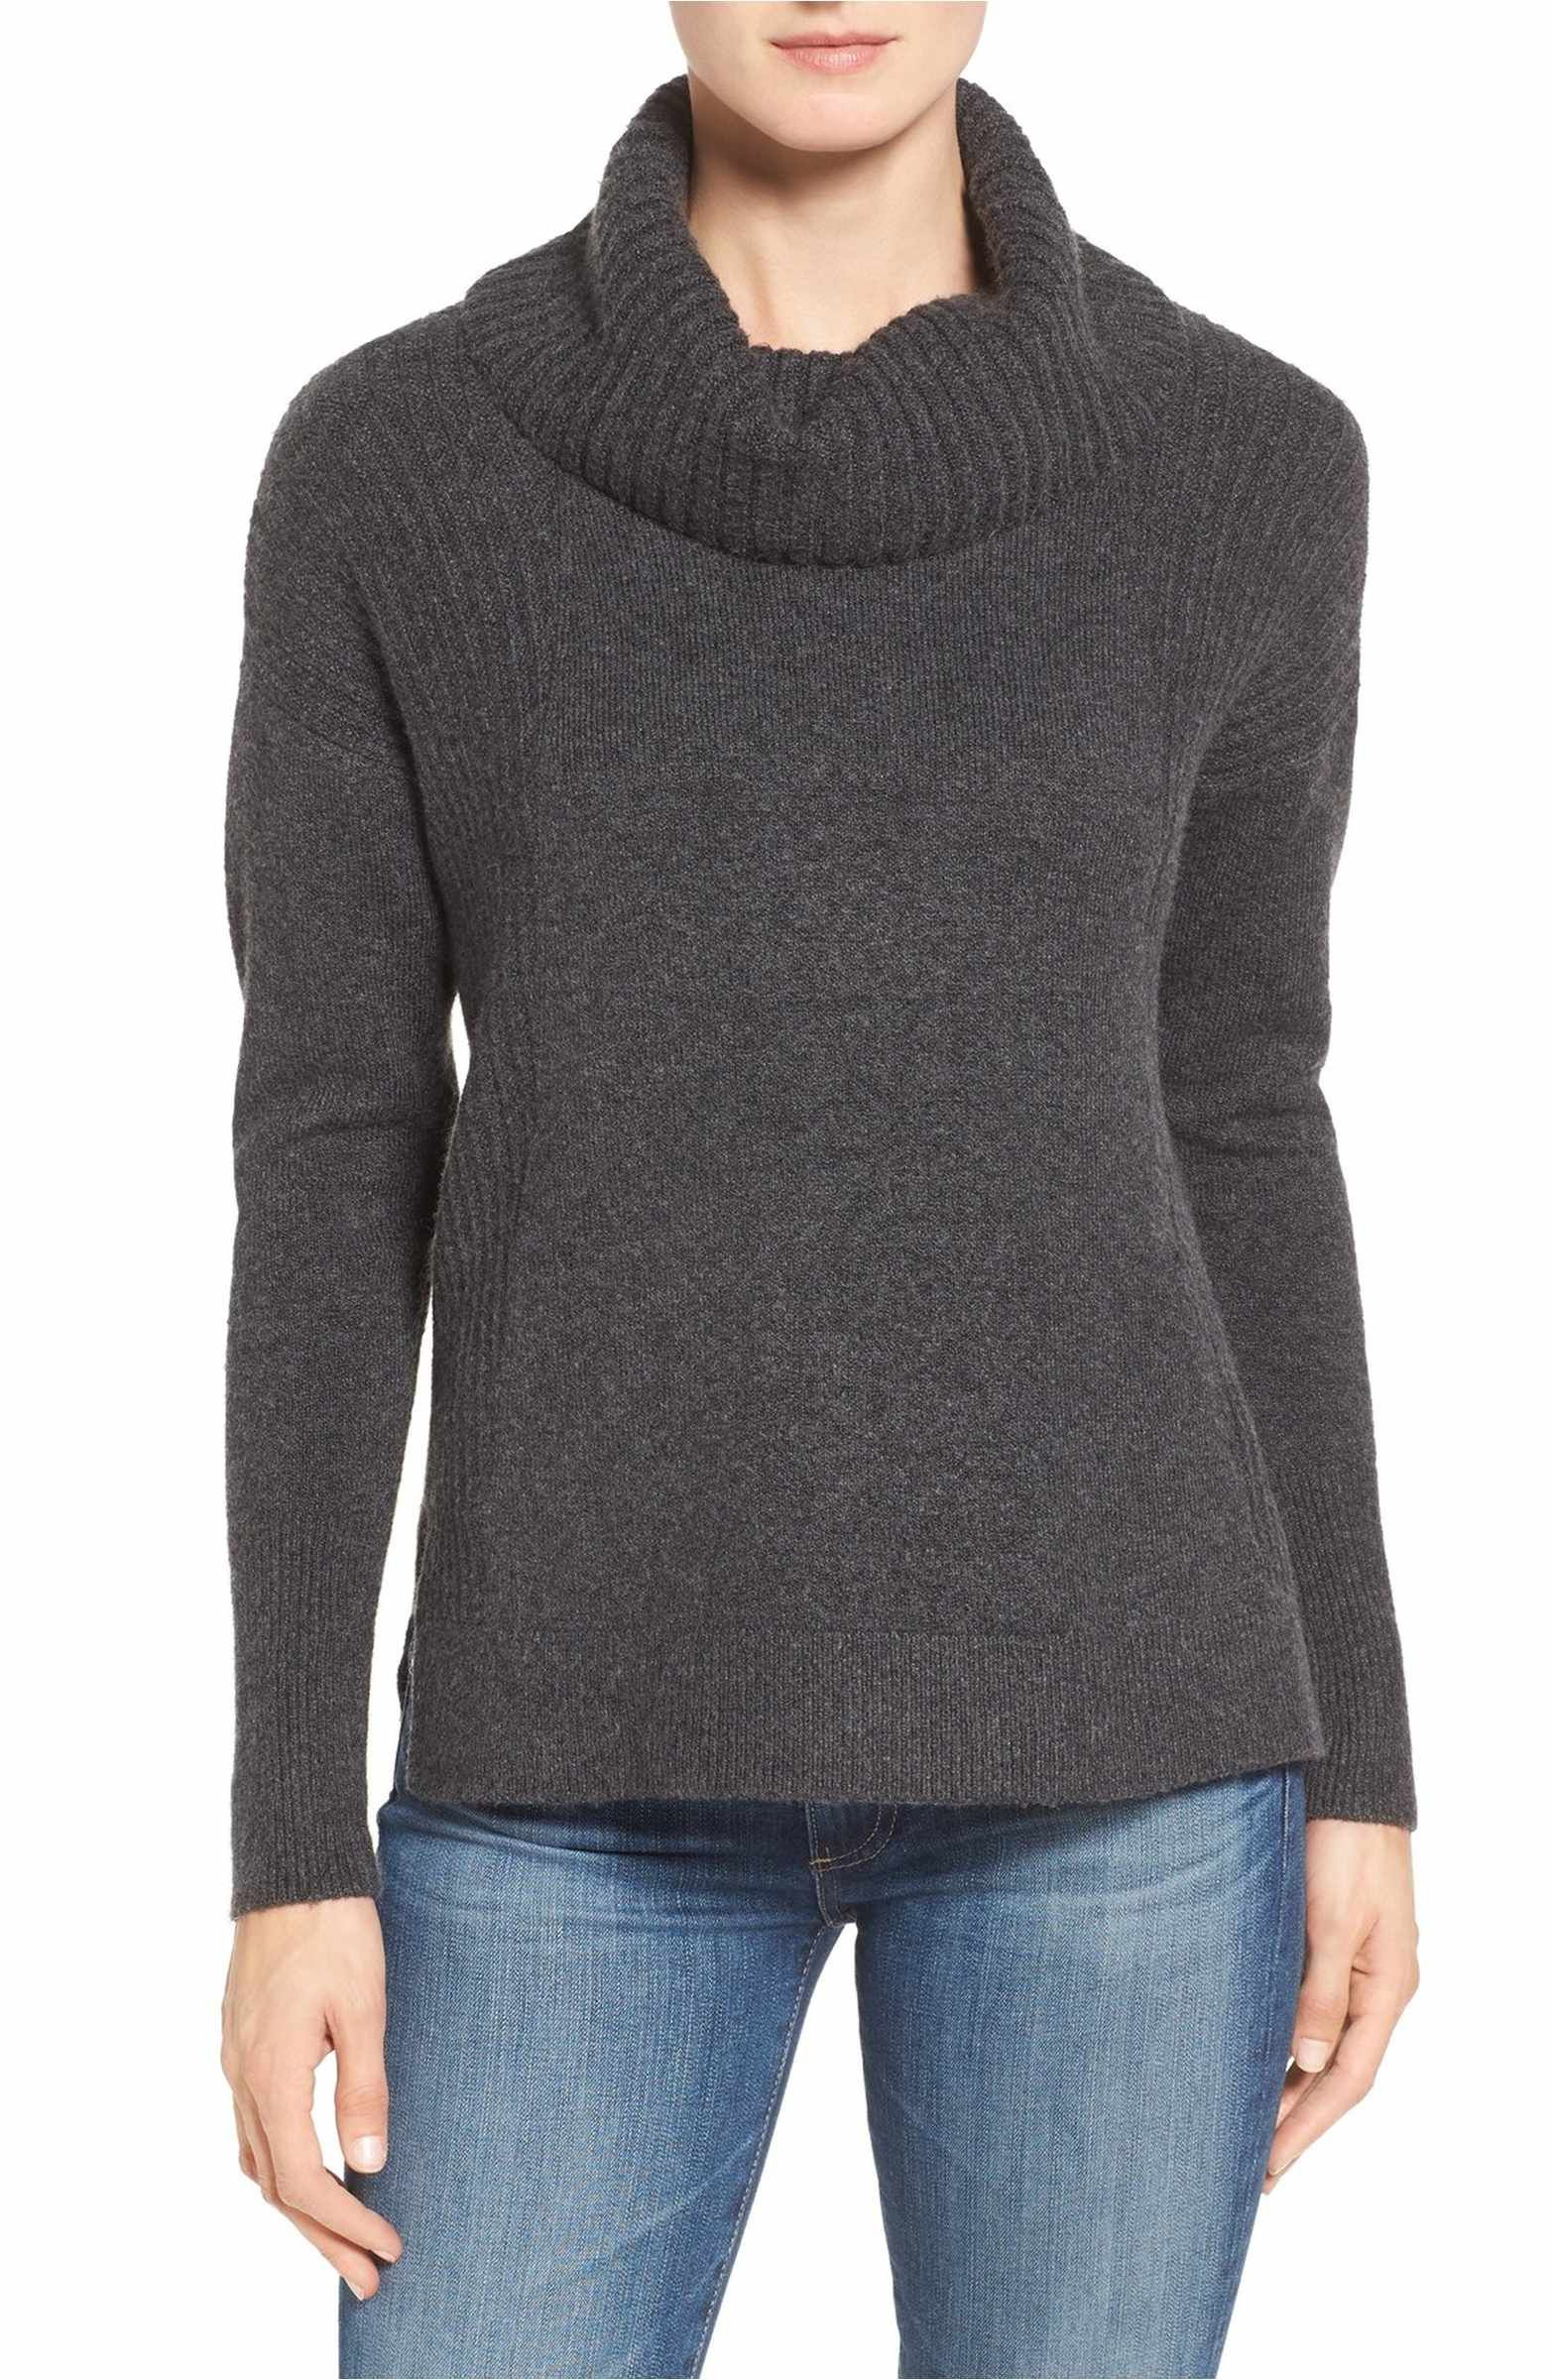 Cozy Rib Detail Relaxed Turtleneck | Cozy, Nordstrom and Capsule ...